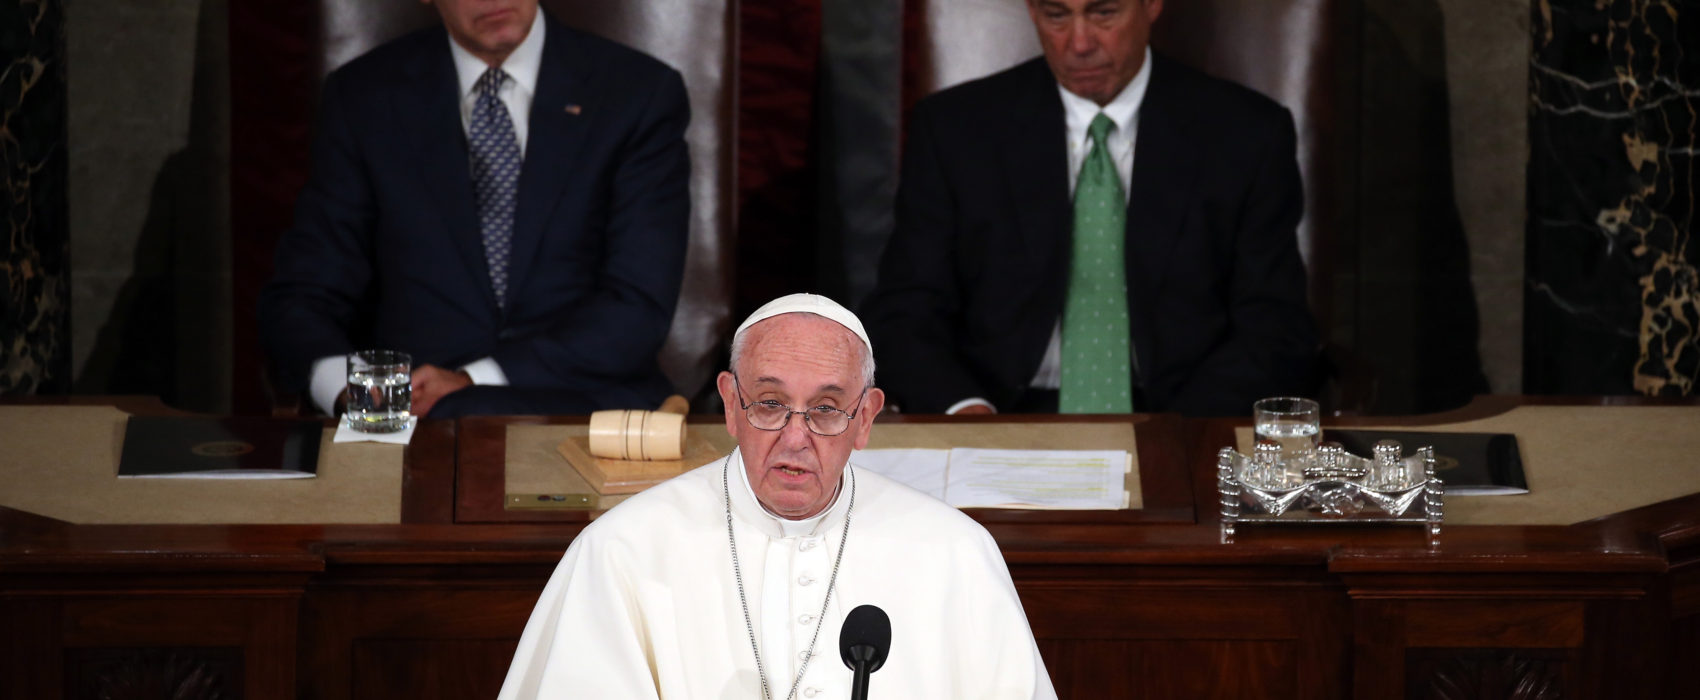 Pope Francis addresses a joint meeting of the U.S. Congress in the House Chamber of the U.S. Capitol Thursday. He is first pope to address a joint meeting of Congress. Mark Wilson/Getty Images